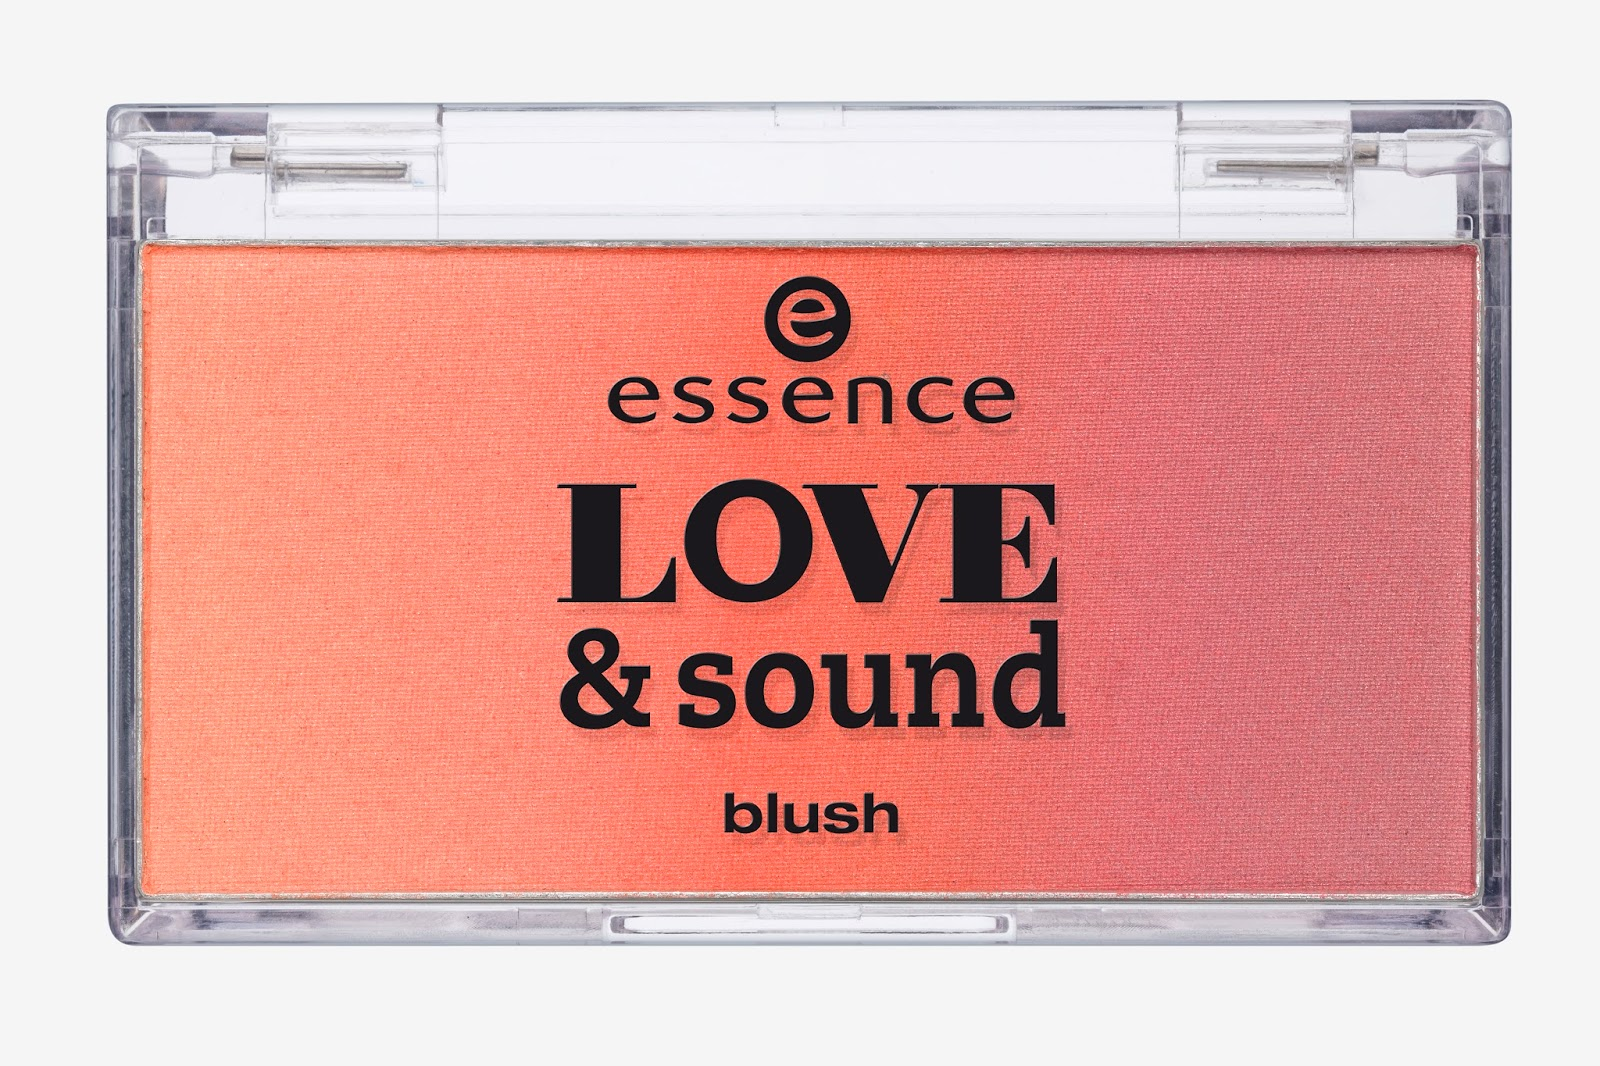 Essence Love & Sound